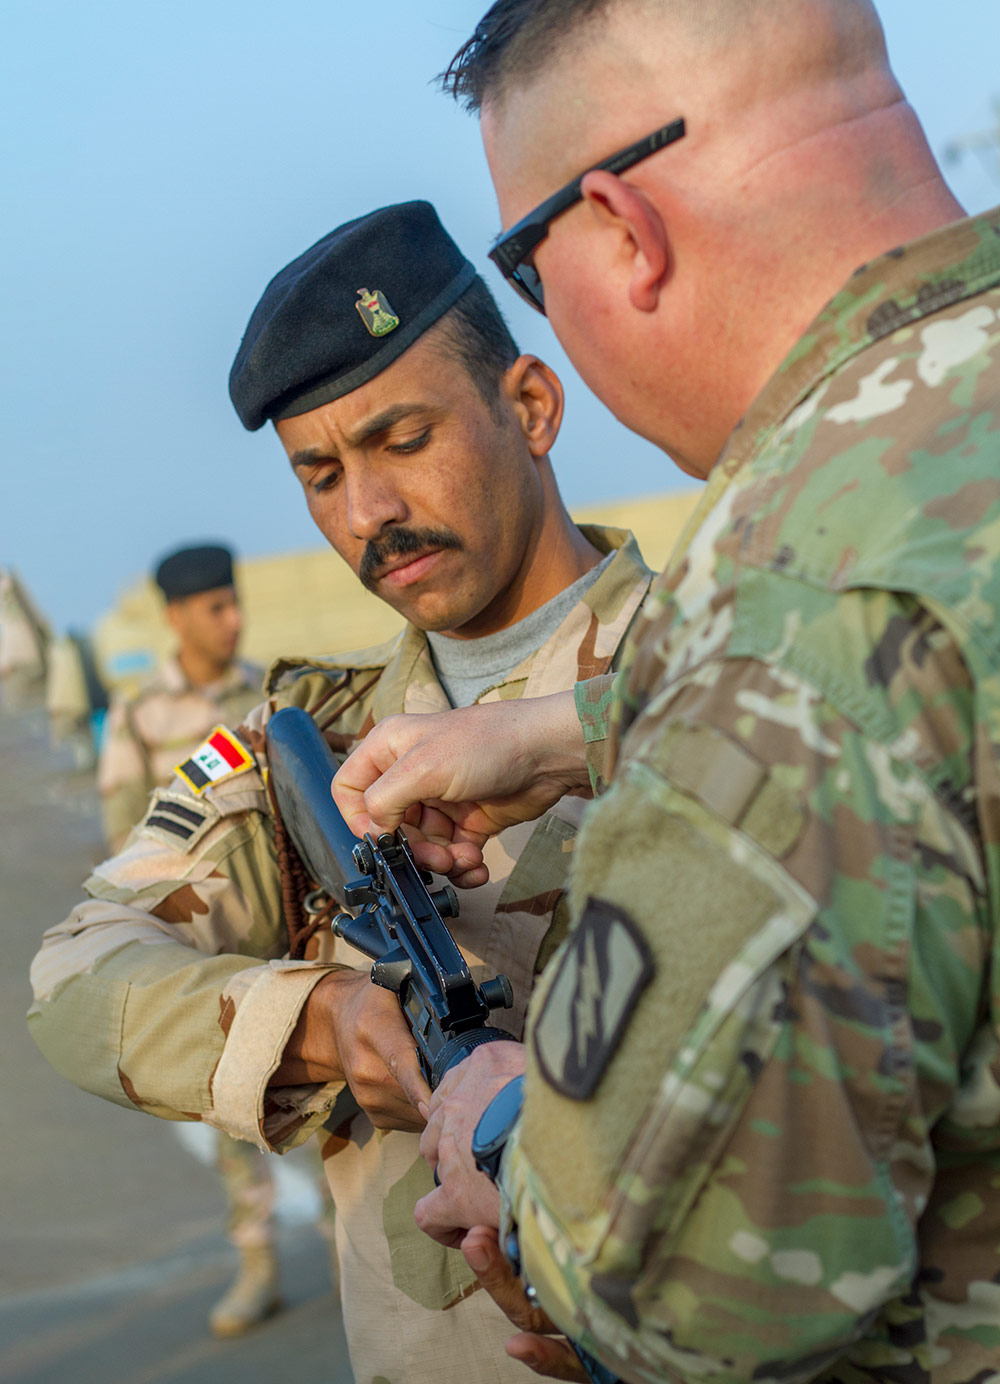 SFC Michael Garner (right) of the 2nd Battalion, 114th Field Artillery Regiment, 155th Armored Brigade Combat Team, Mississippi Army National Guard and Task Force India Bravo, instructs an Iraqi soldier during a primary marksmanship course led by the task force at Camp Taji, Iraq. Mississippi Army National Guard photo by SPC Jovi Prevot